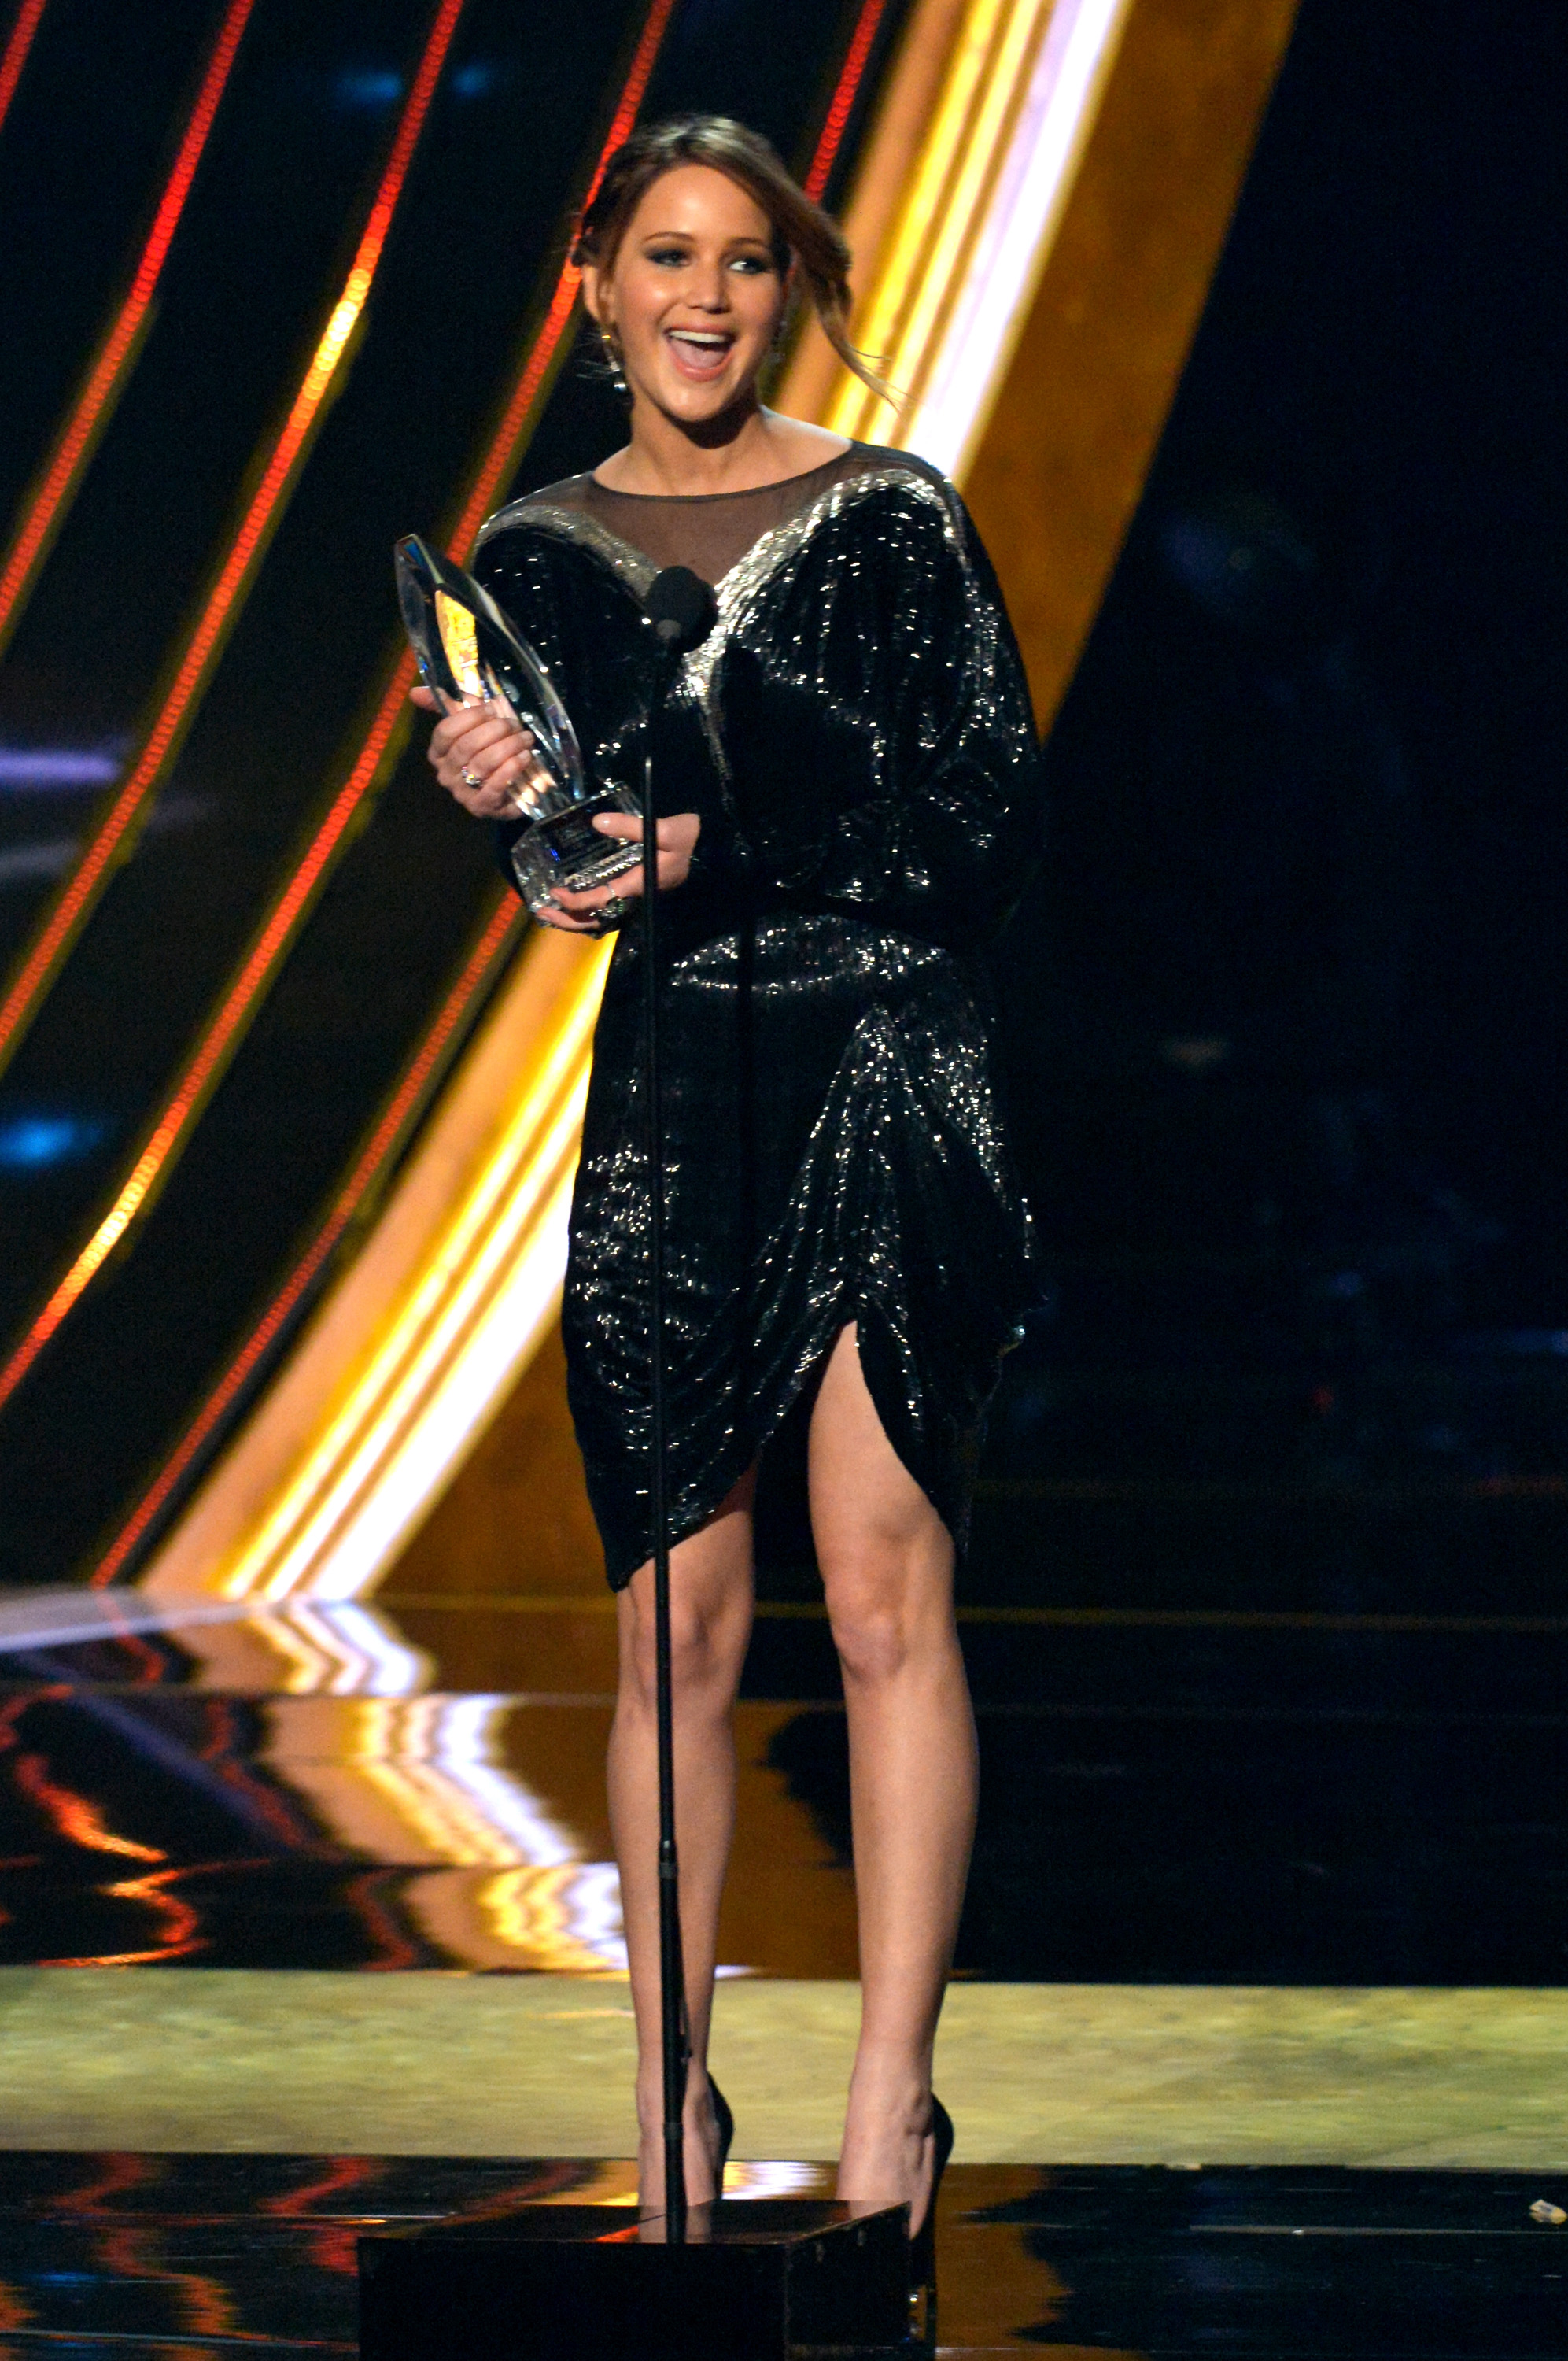 Jennifer Lawrence onstage during the 2013 People's Choice Awards on Jan. 9, 2013 in Los Angeles.